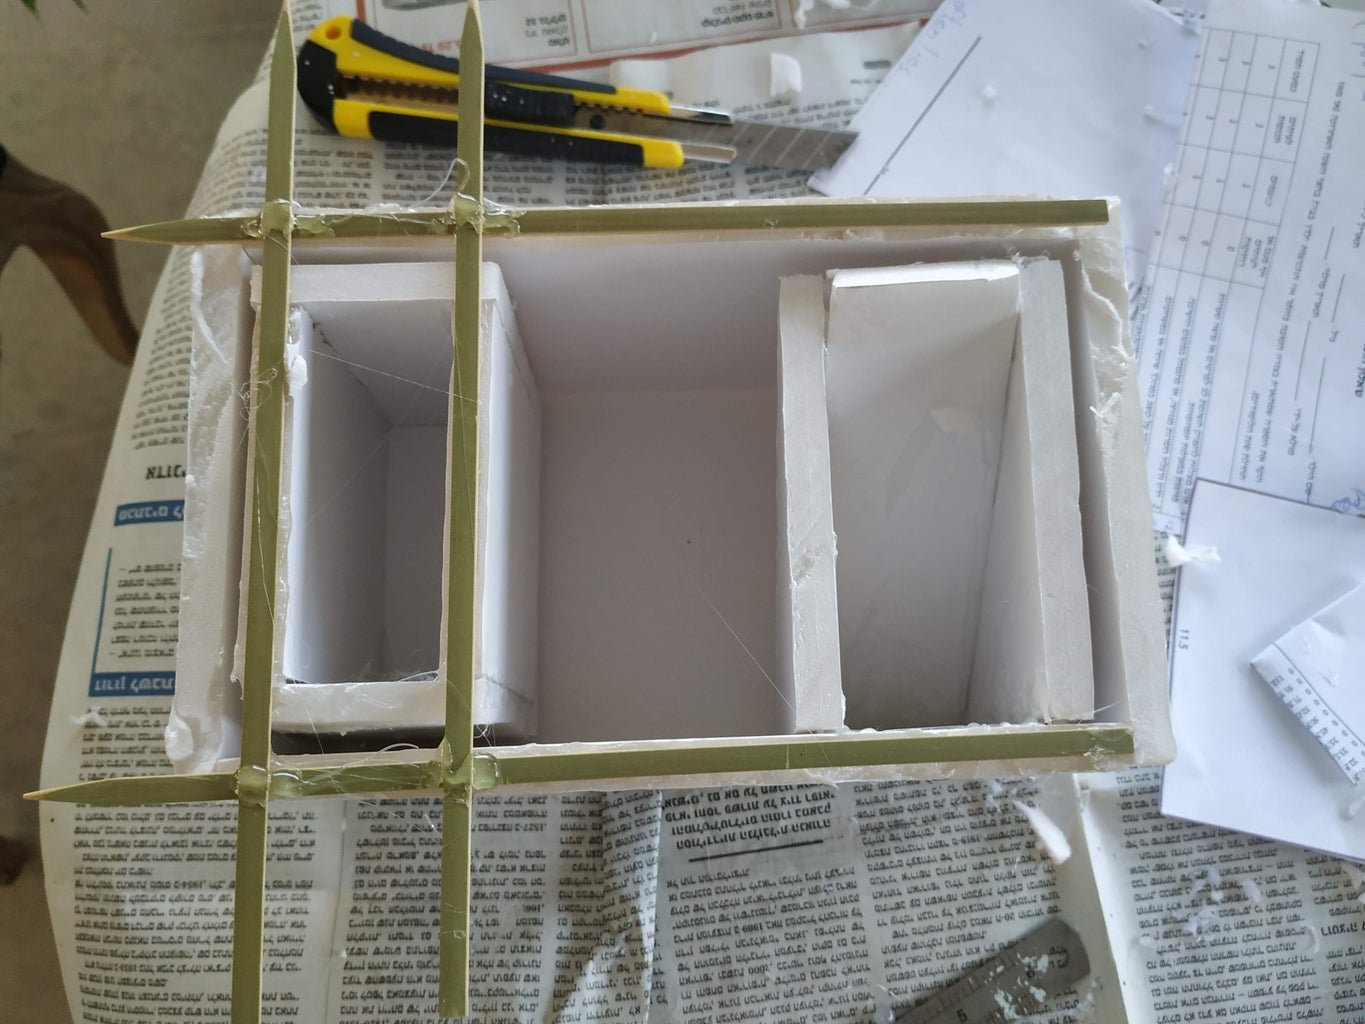 Assembling the Pieces to Create a Mold